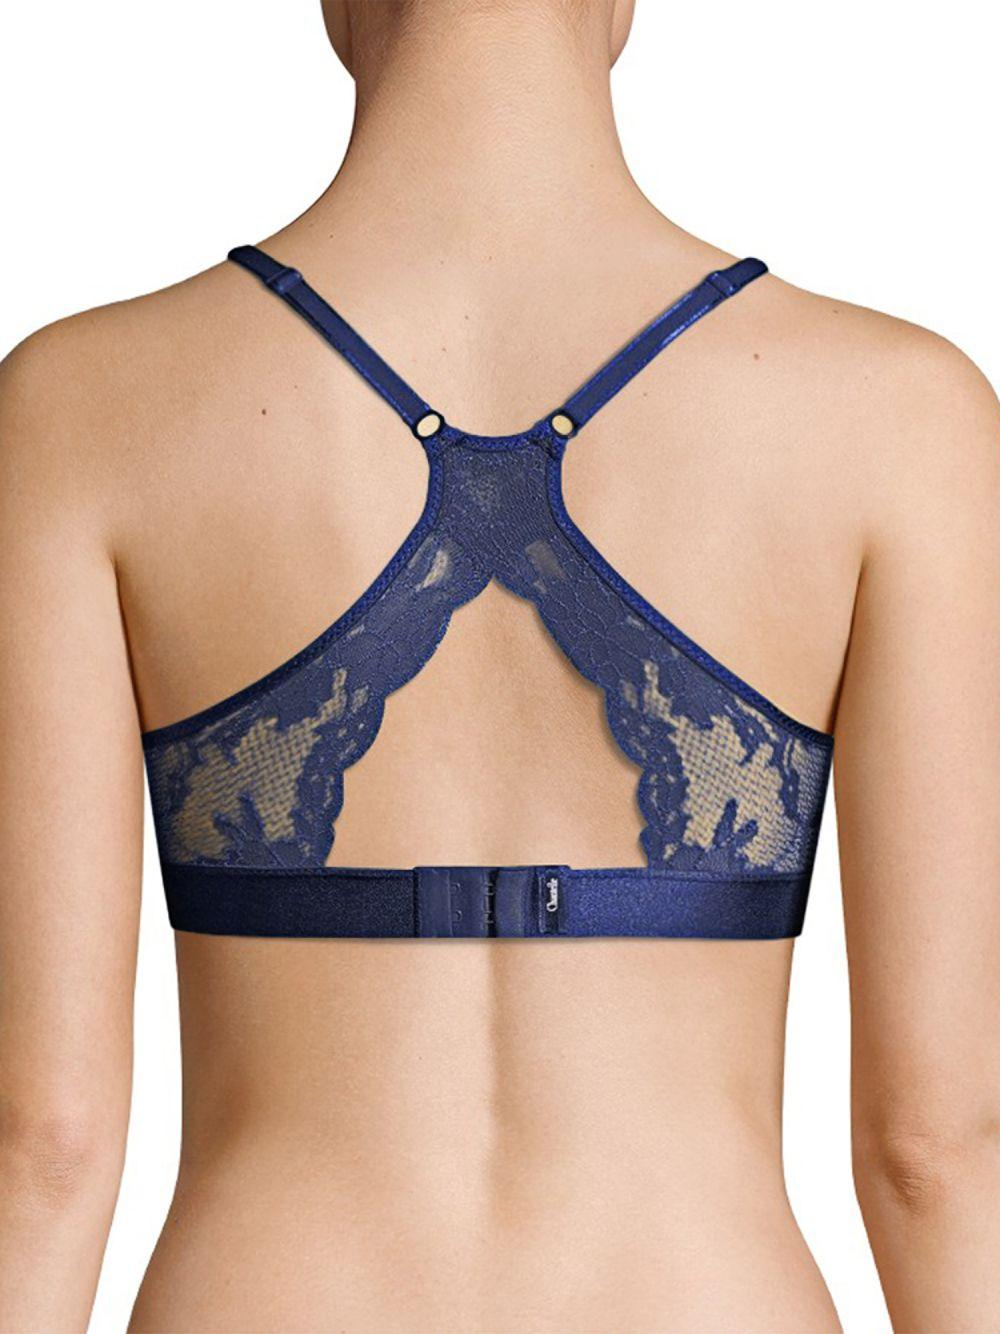 9524b802c7b521 Lyst - Chantelle Everyday Lace Racerback Wireless Bra in Blue - Save 32%